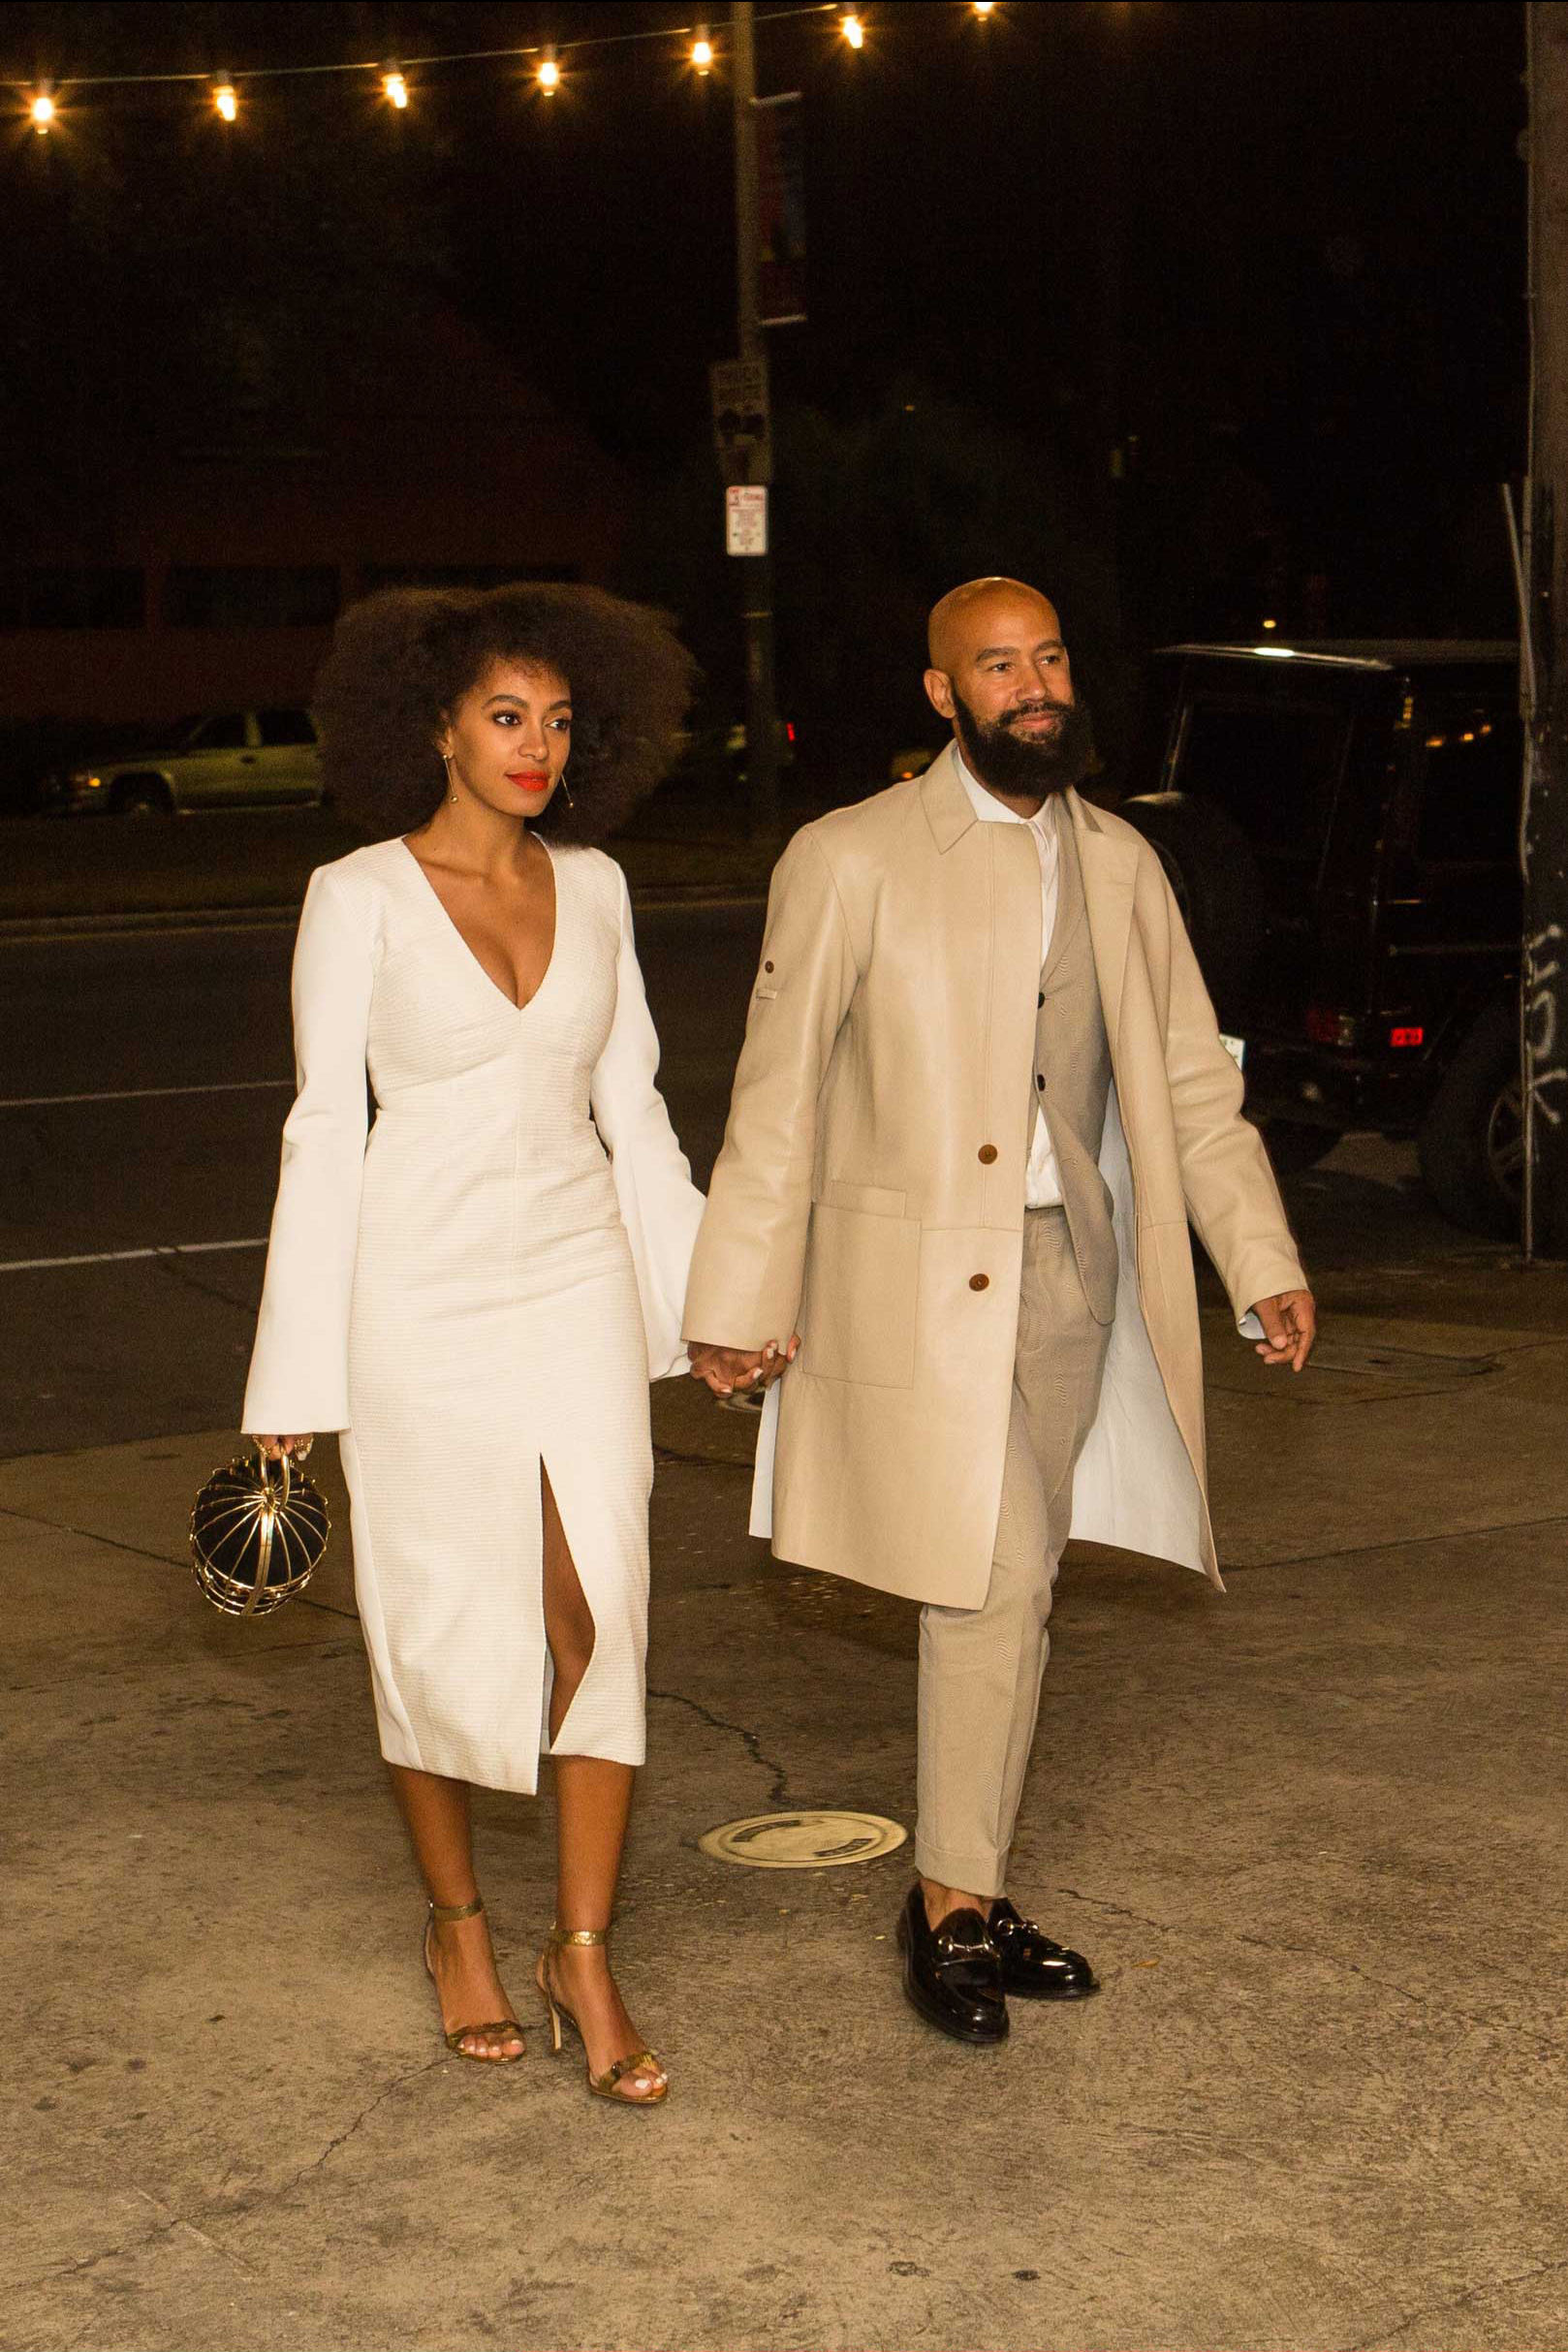 Musician Solange Knowles (L) and her fiancee, music video director Alan Ferguson, are seen outside the Indywood Cinema in New Orleans on Nov. 14, 2014.